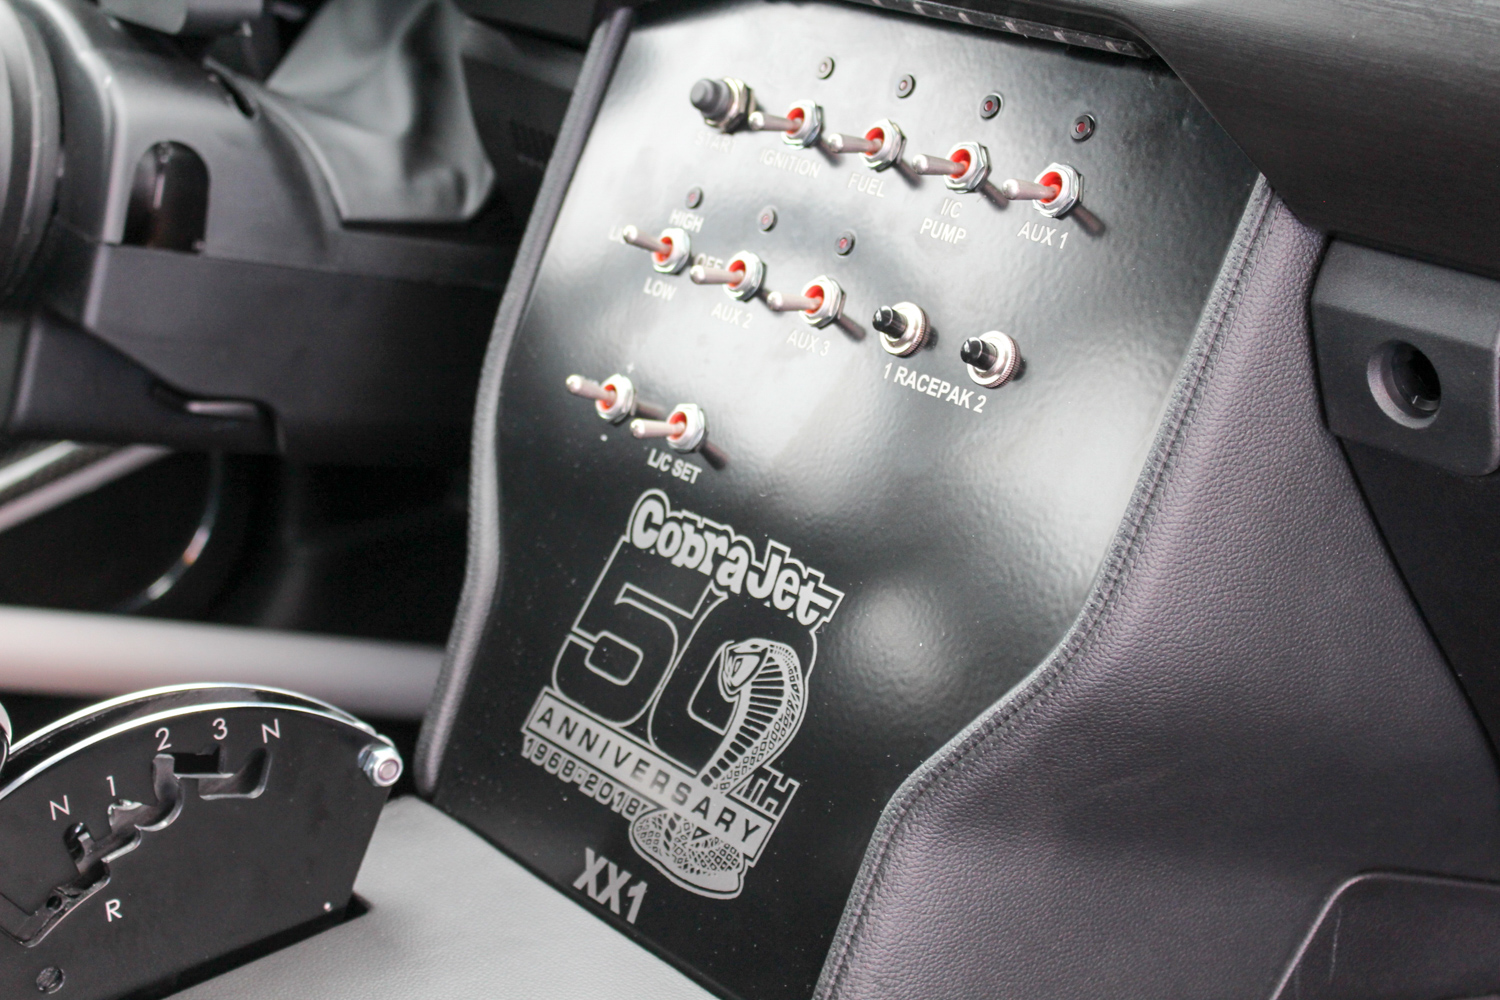 2018 Ford Mustang Cobra Jet switch gear